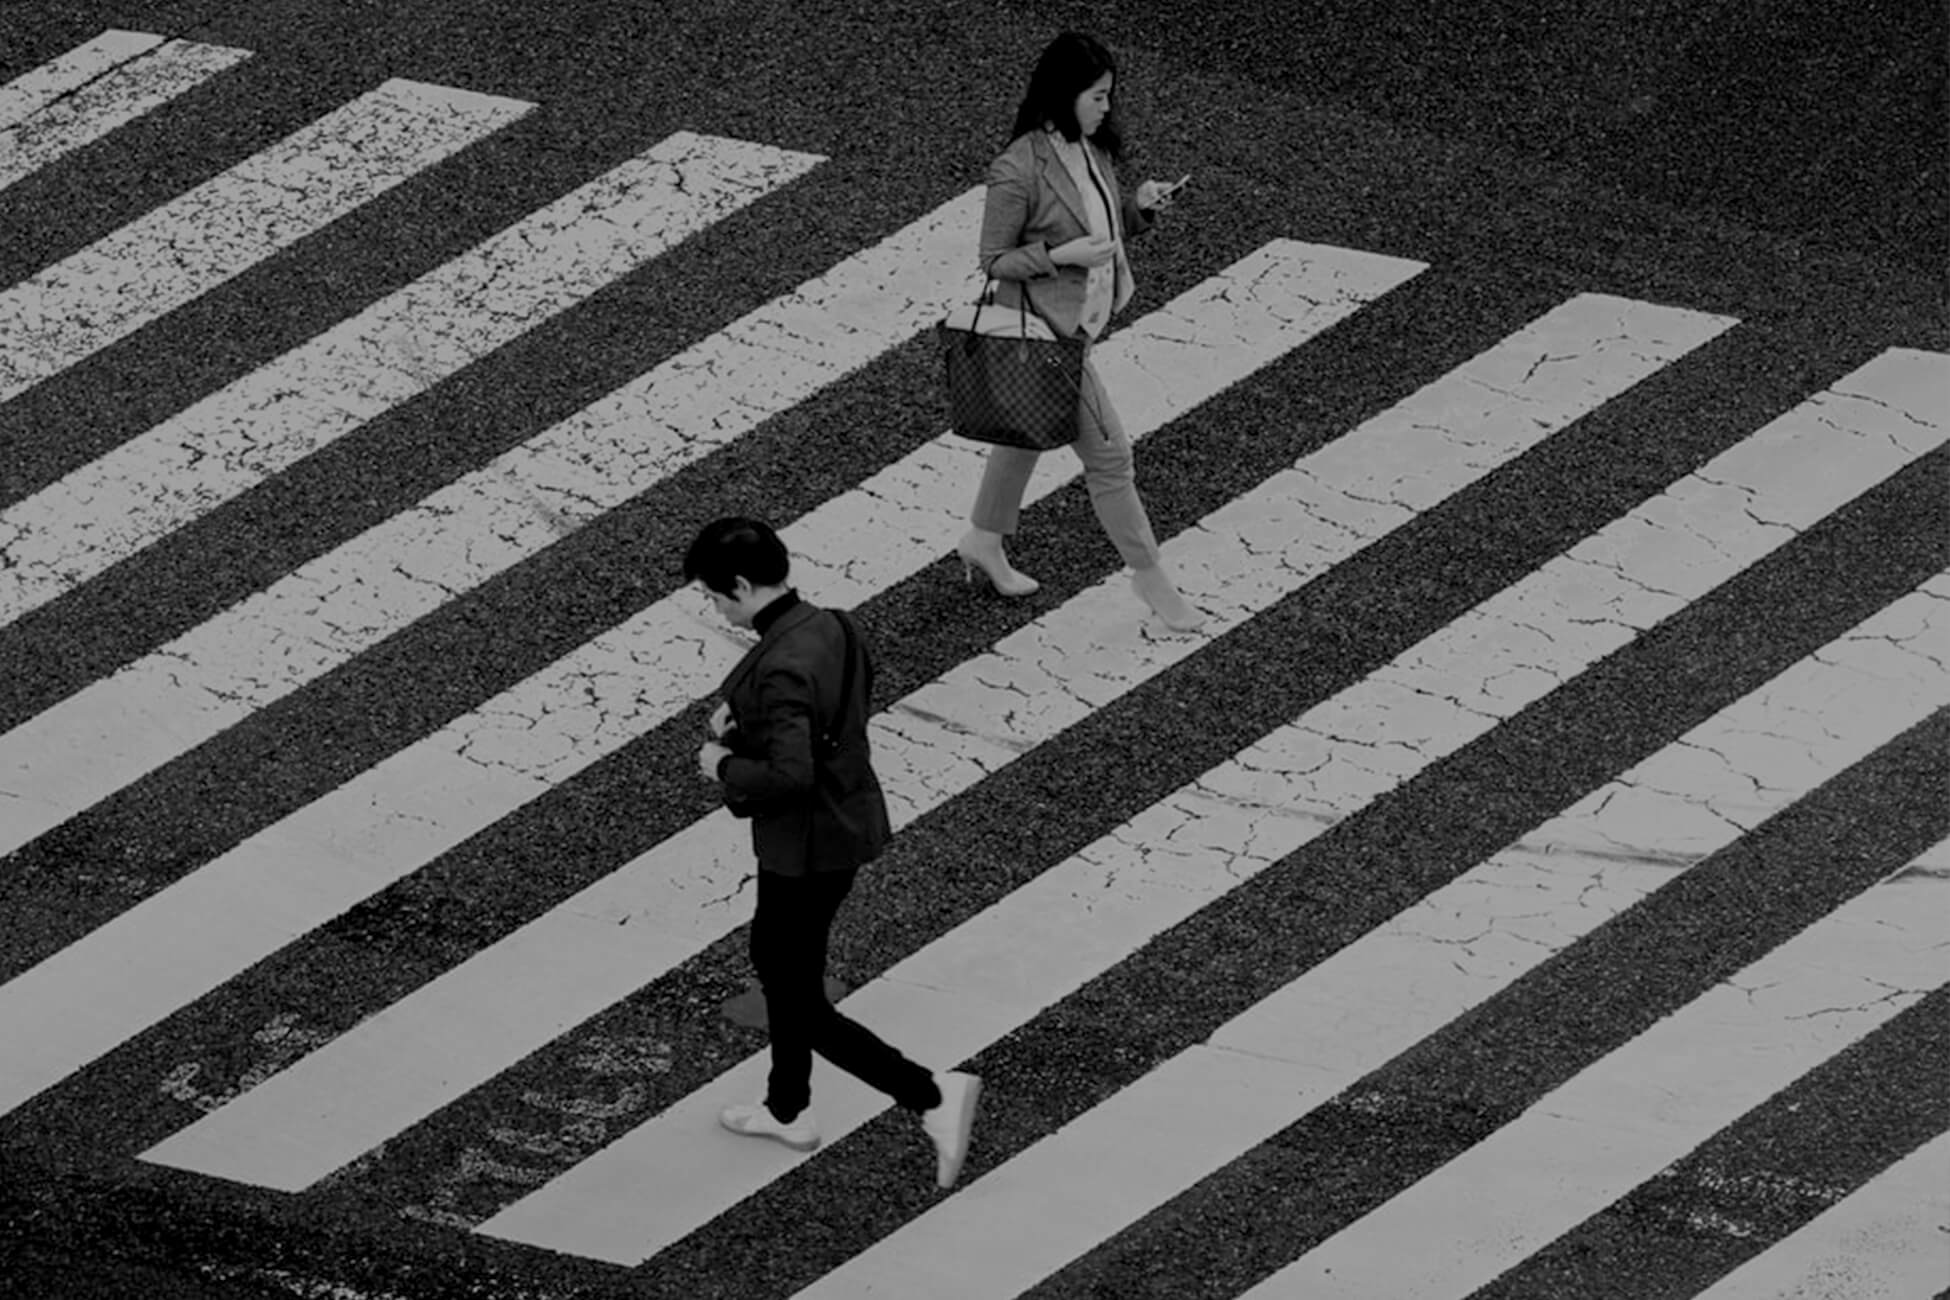 Two people crossing paths